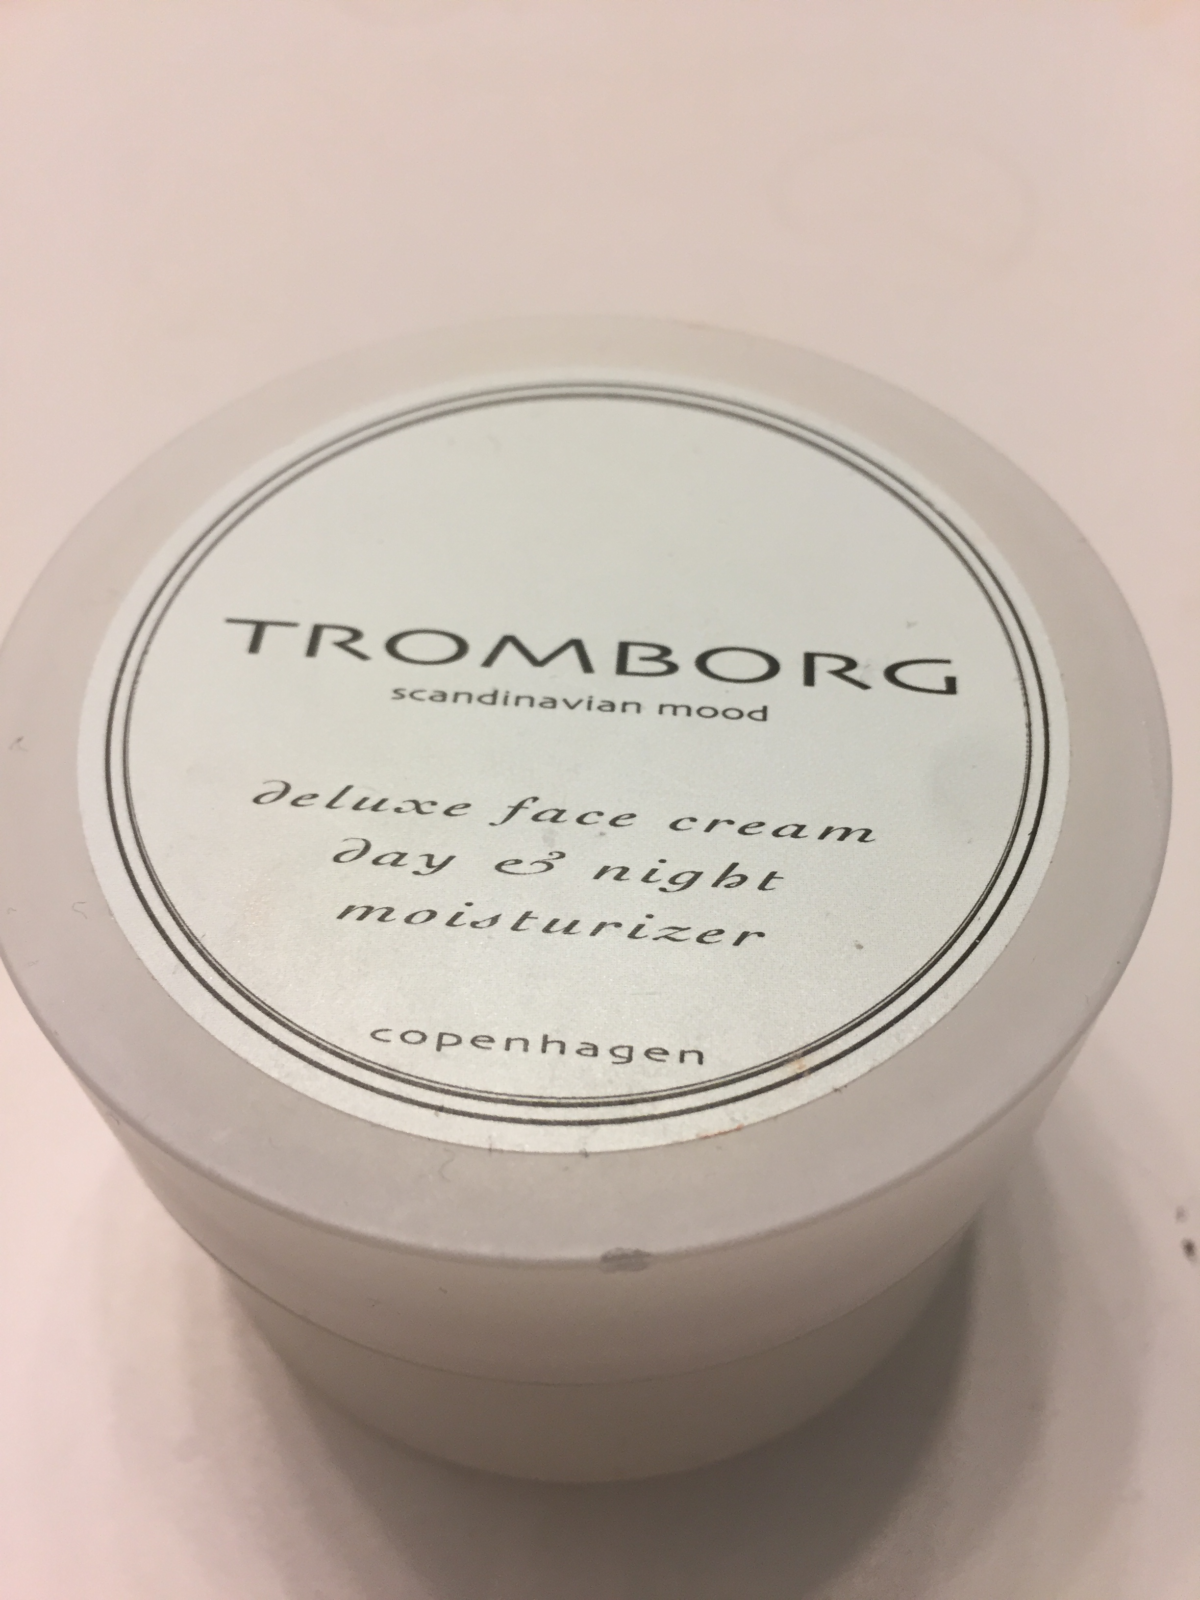 Tromborg Deluxe Face Cream Day & Night Moisturizer